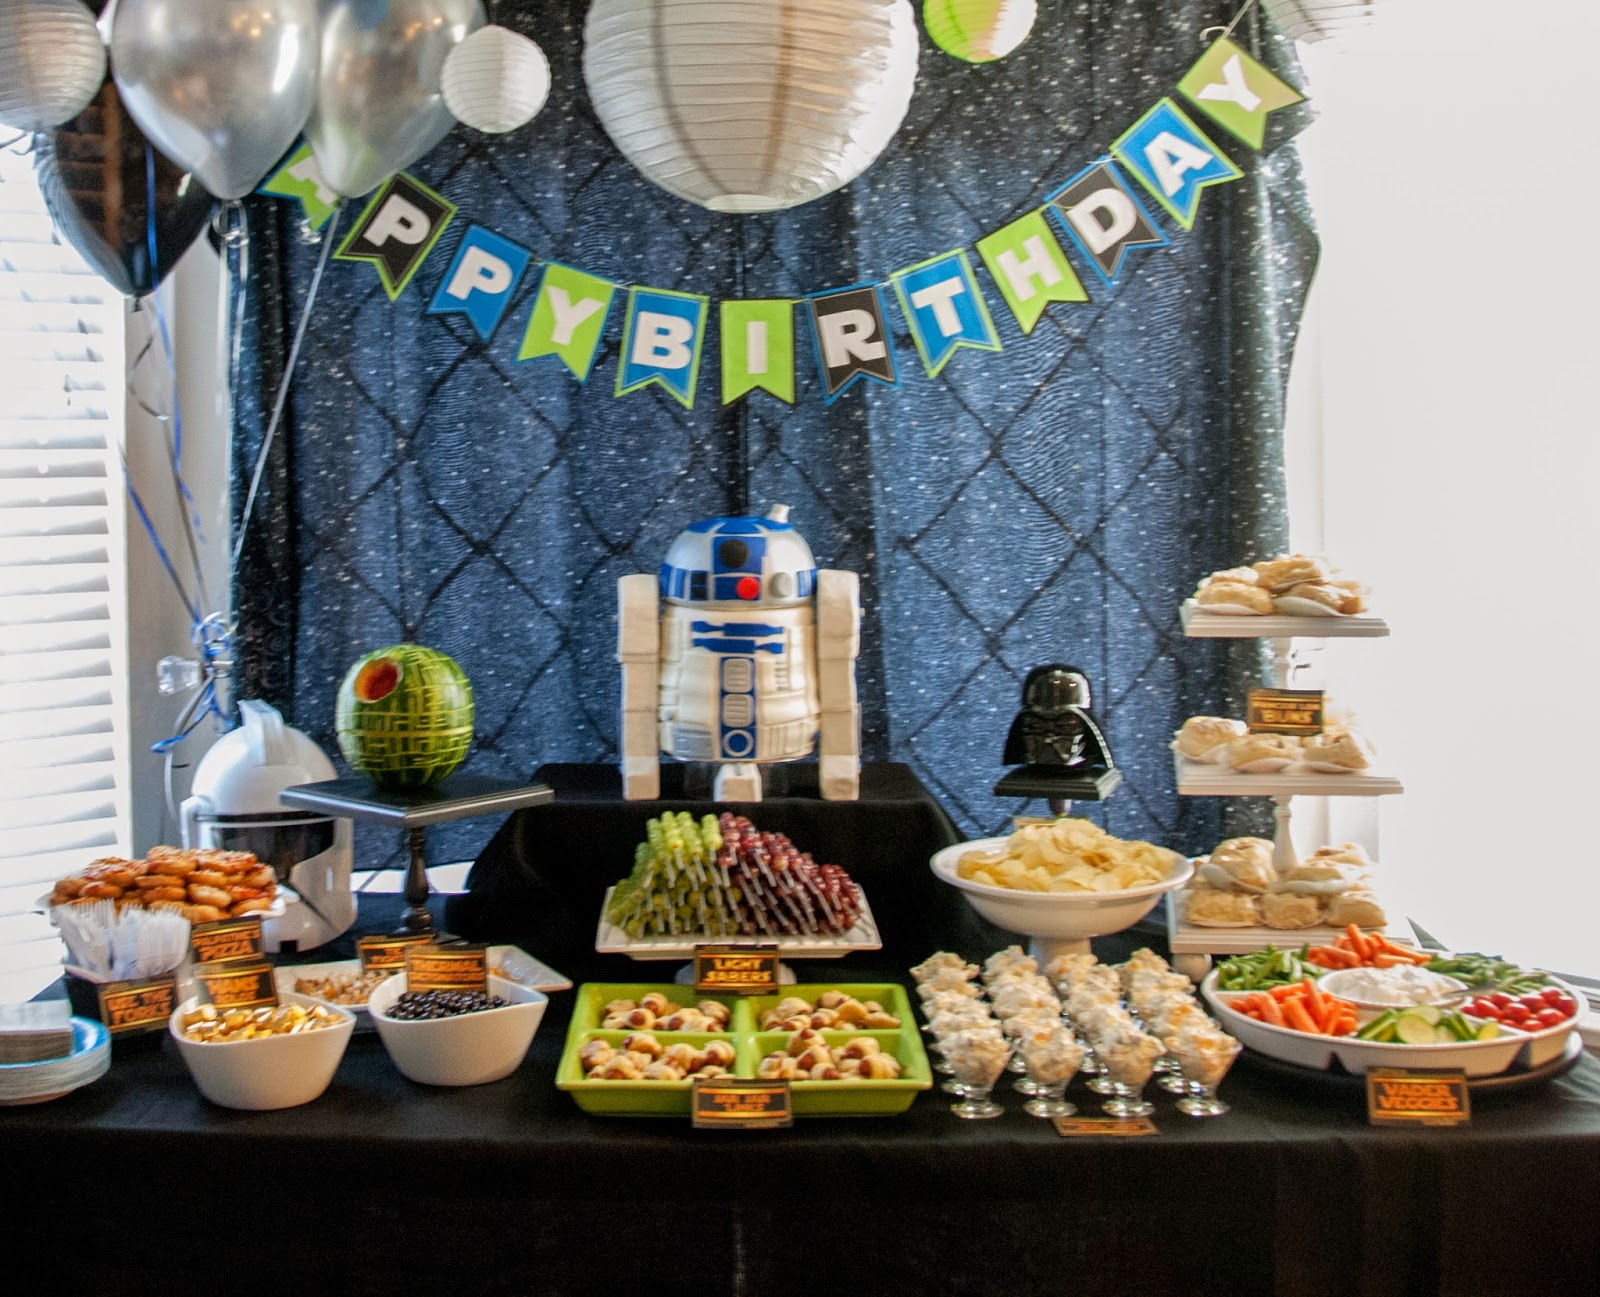 Author Robin King Blog Star Wars Party With R2D2 Cake